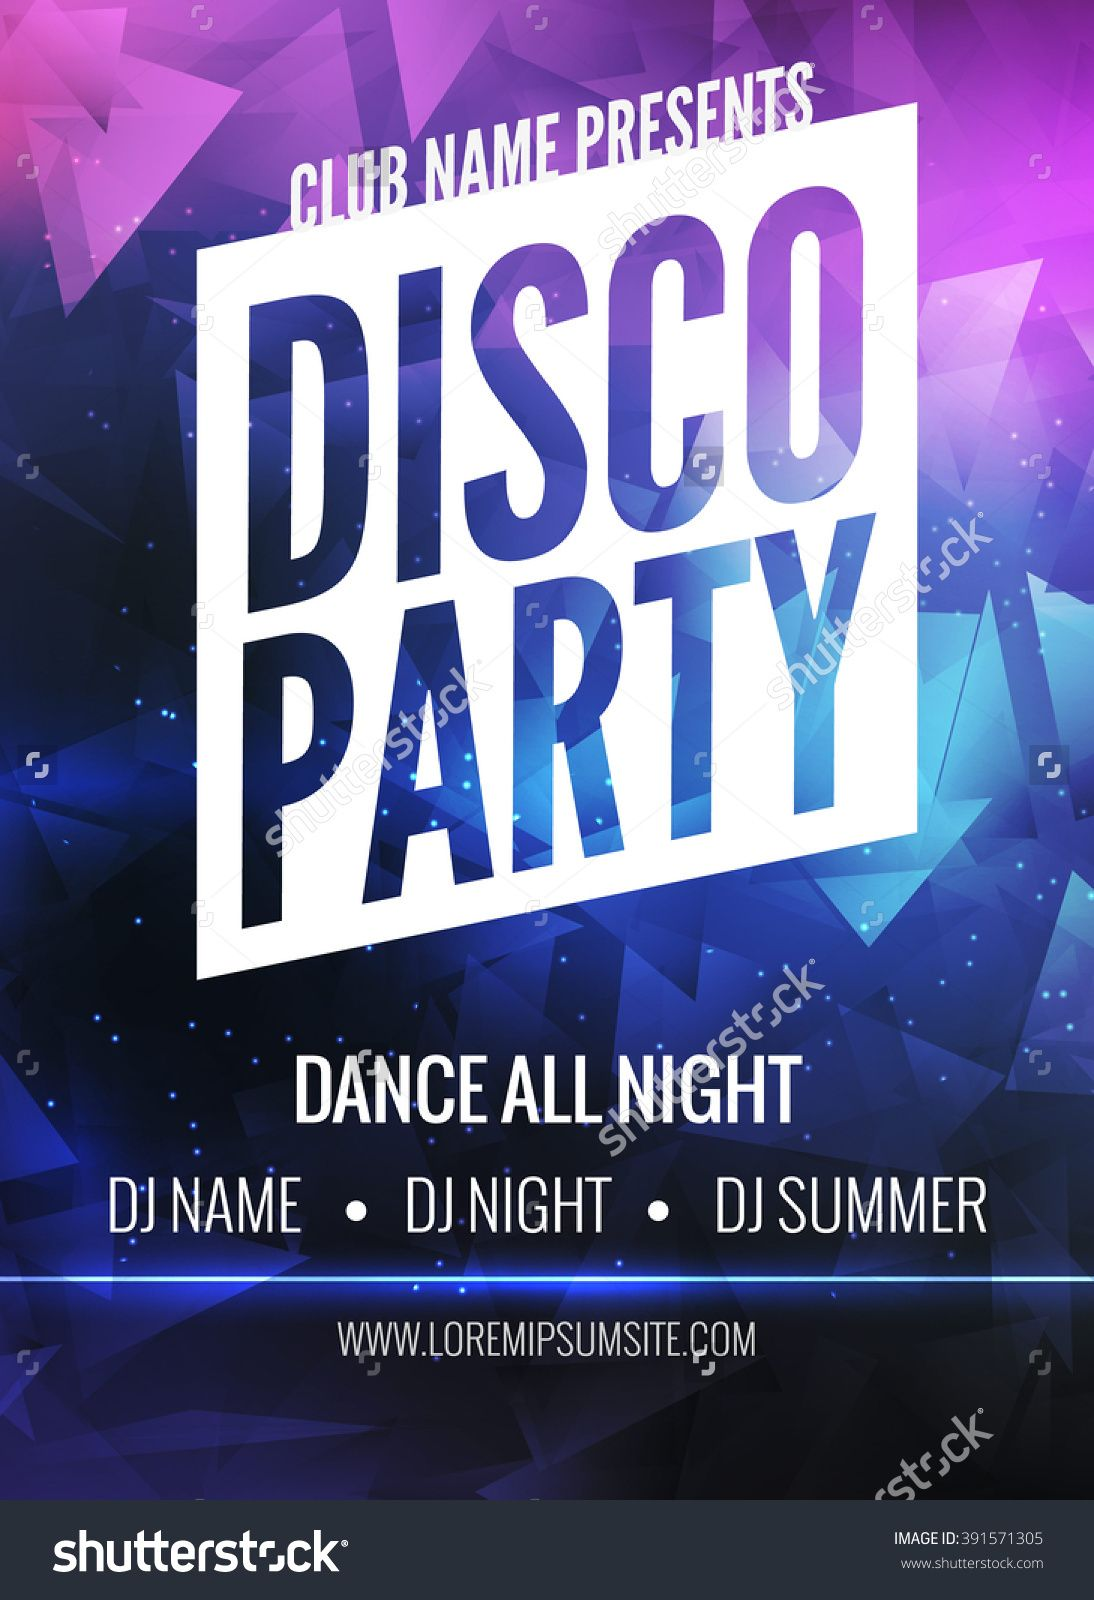 90s dance poster flyer google search 90 39 s music night for Poster template 90 x 120cm